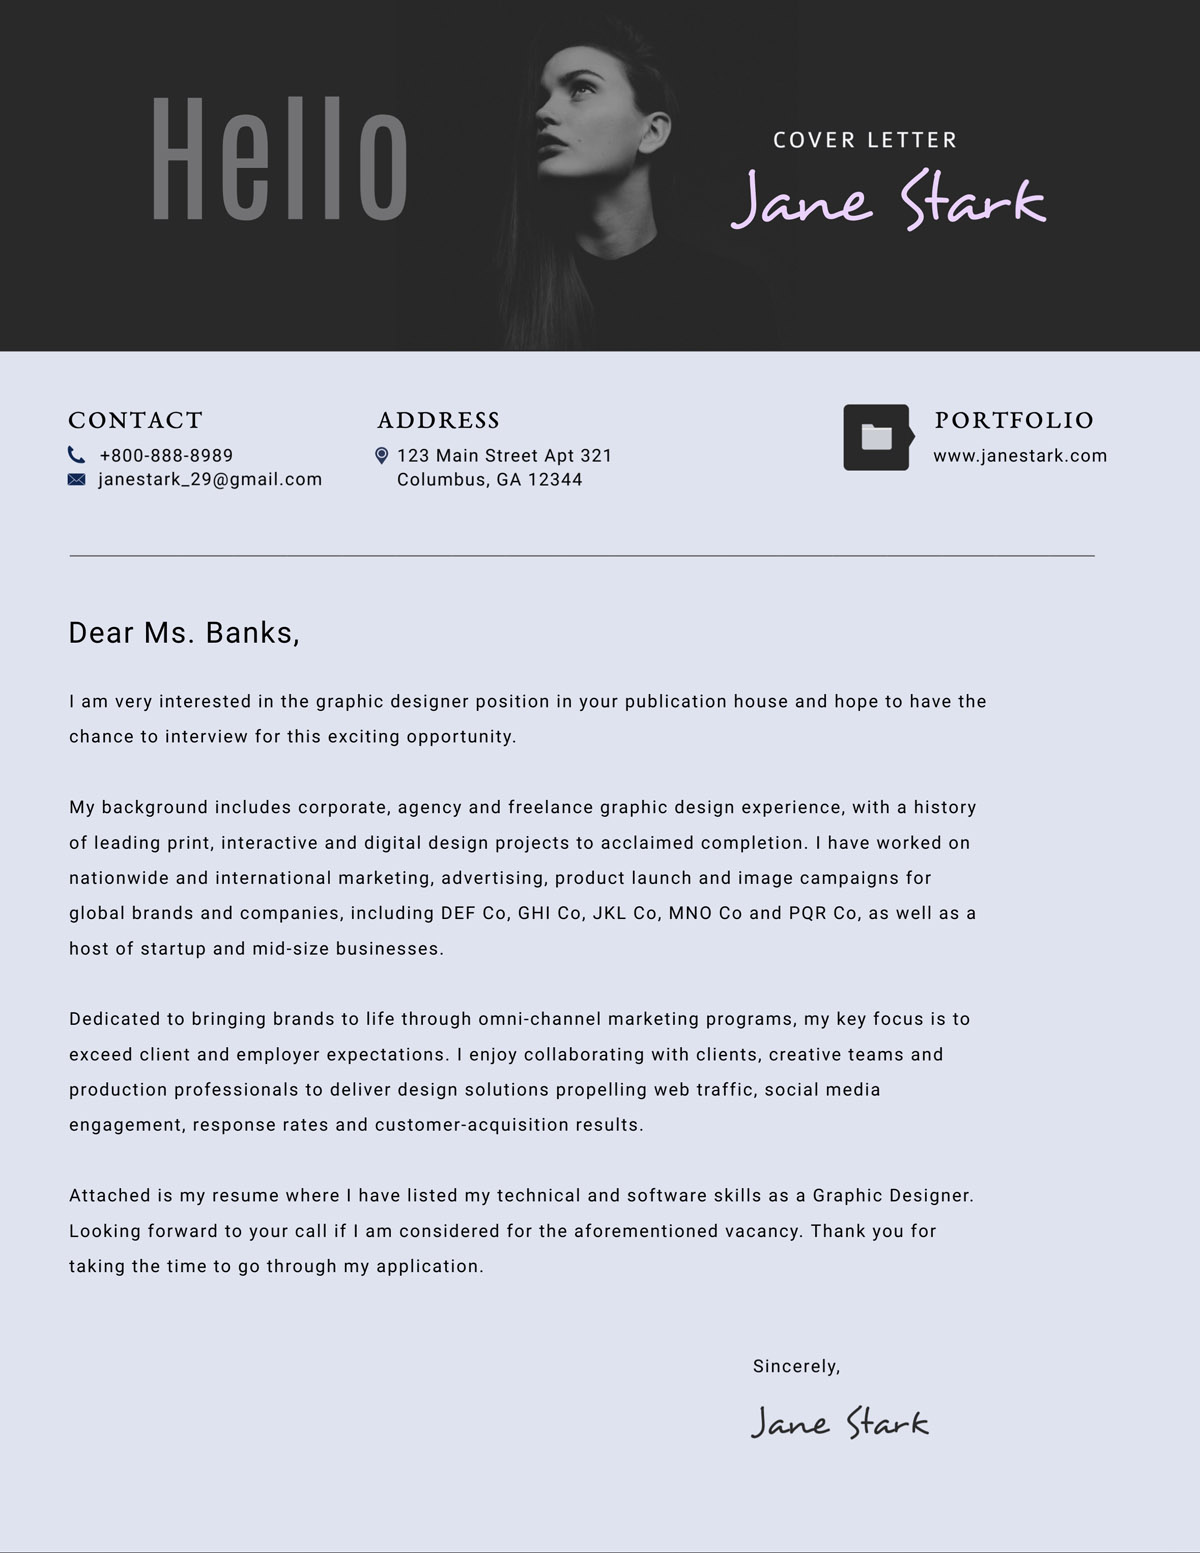 effective cover letter templates you can customize and unique resume graphicdesigner Resume Unique Resume Cover Letter